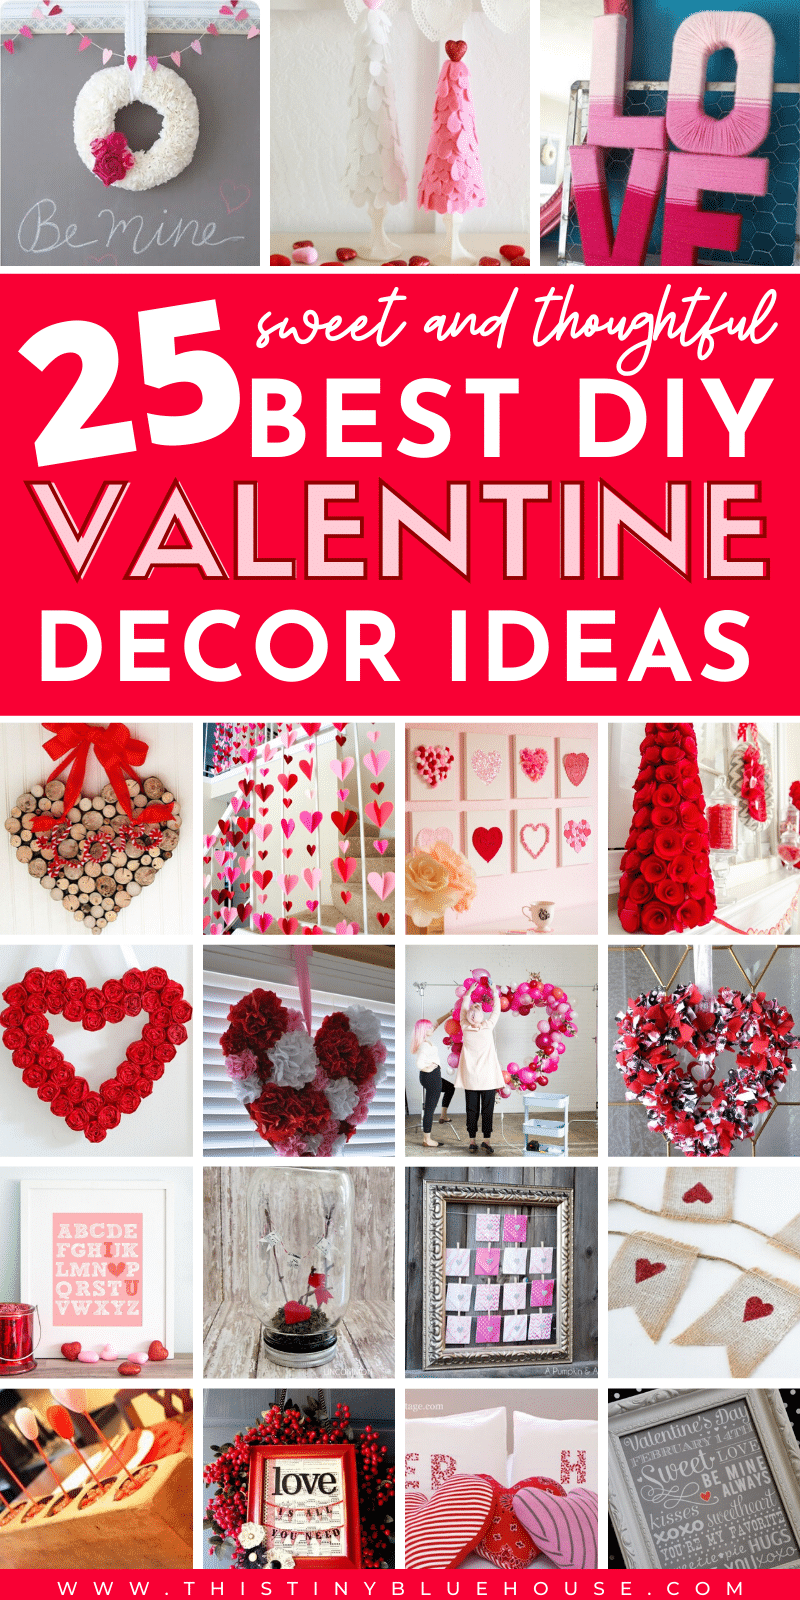 Looking for easy DIY Valentine's Day Decor ideas? Here are 20+ of the best DIY Valentine's Day Decor projects that you can make with dollar store supplies. #DIYValentinesDecor #CheapValentinesDecor #EasyValentinesDecor